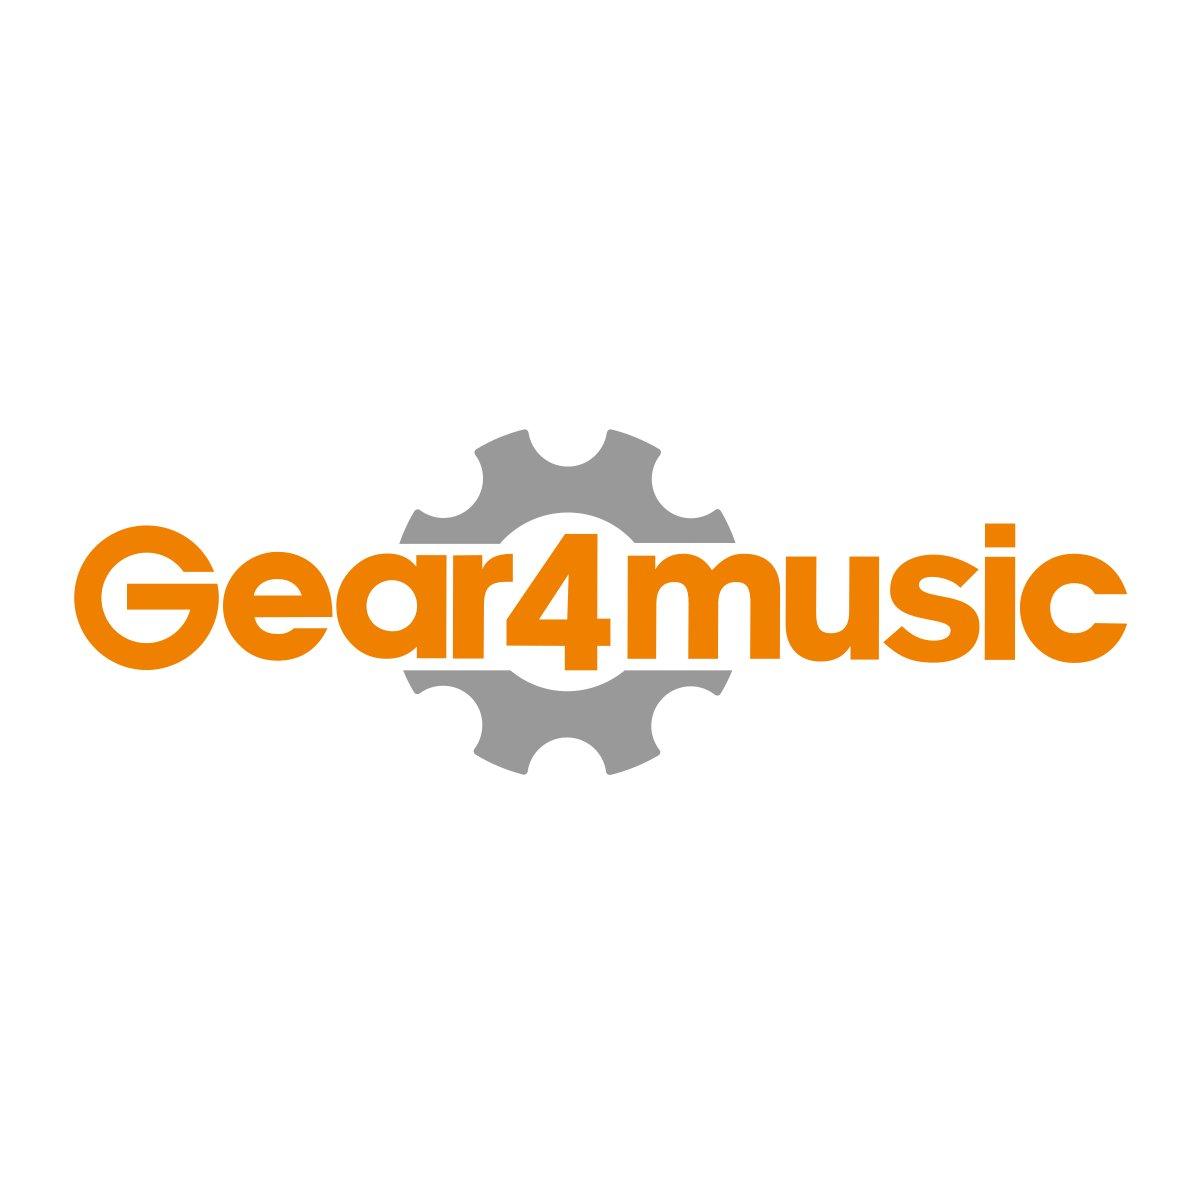 Marshall Ms 2 Micro Amp Black At Gear4music Apmilifier Mini Guitar Bass Amplifier Circuit And Explanation Loading Zoom